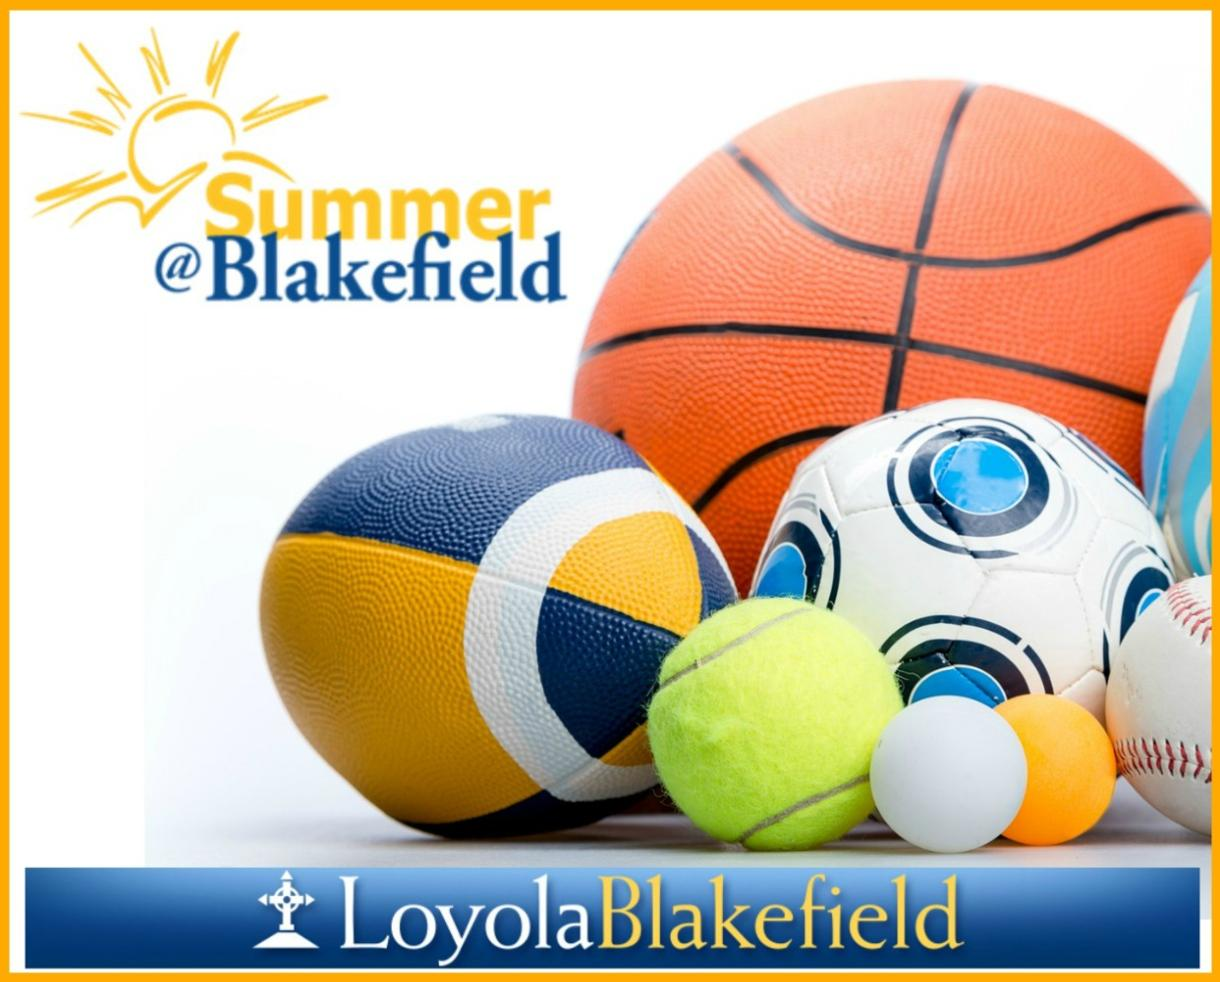 $128+ for Loyola Blakefield Co-Ed Basketball, Volleyball, Boys Football, Girls Field Hockey, Girls Lacrosse or Boys Lacrosse Camp - Ages 8-17 -Towson (Up to $78 Off!)